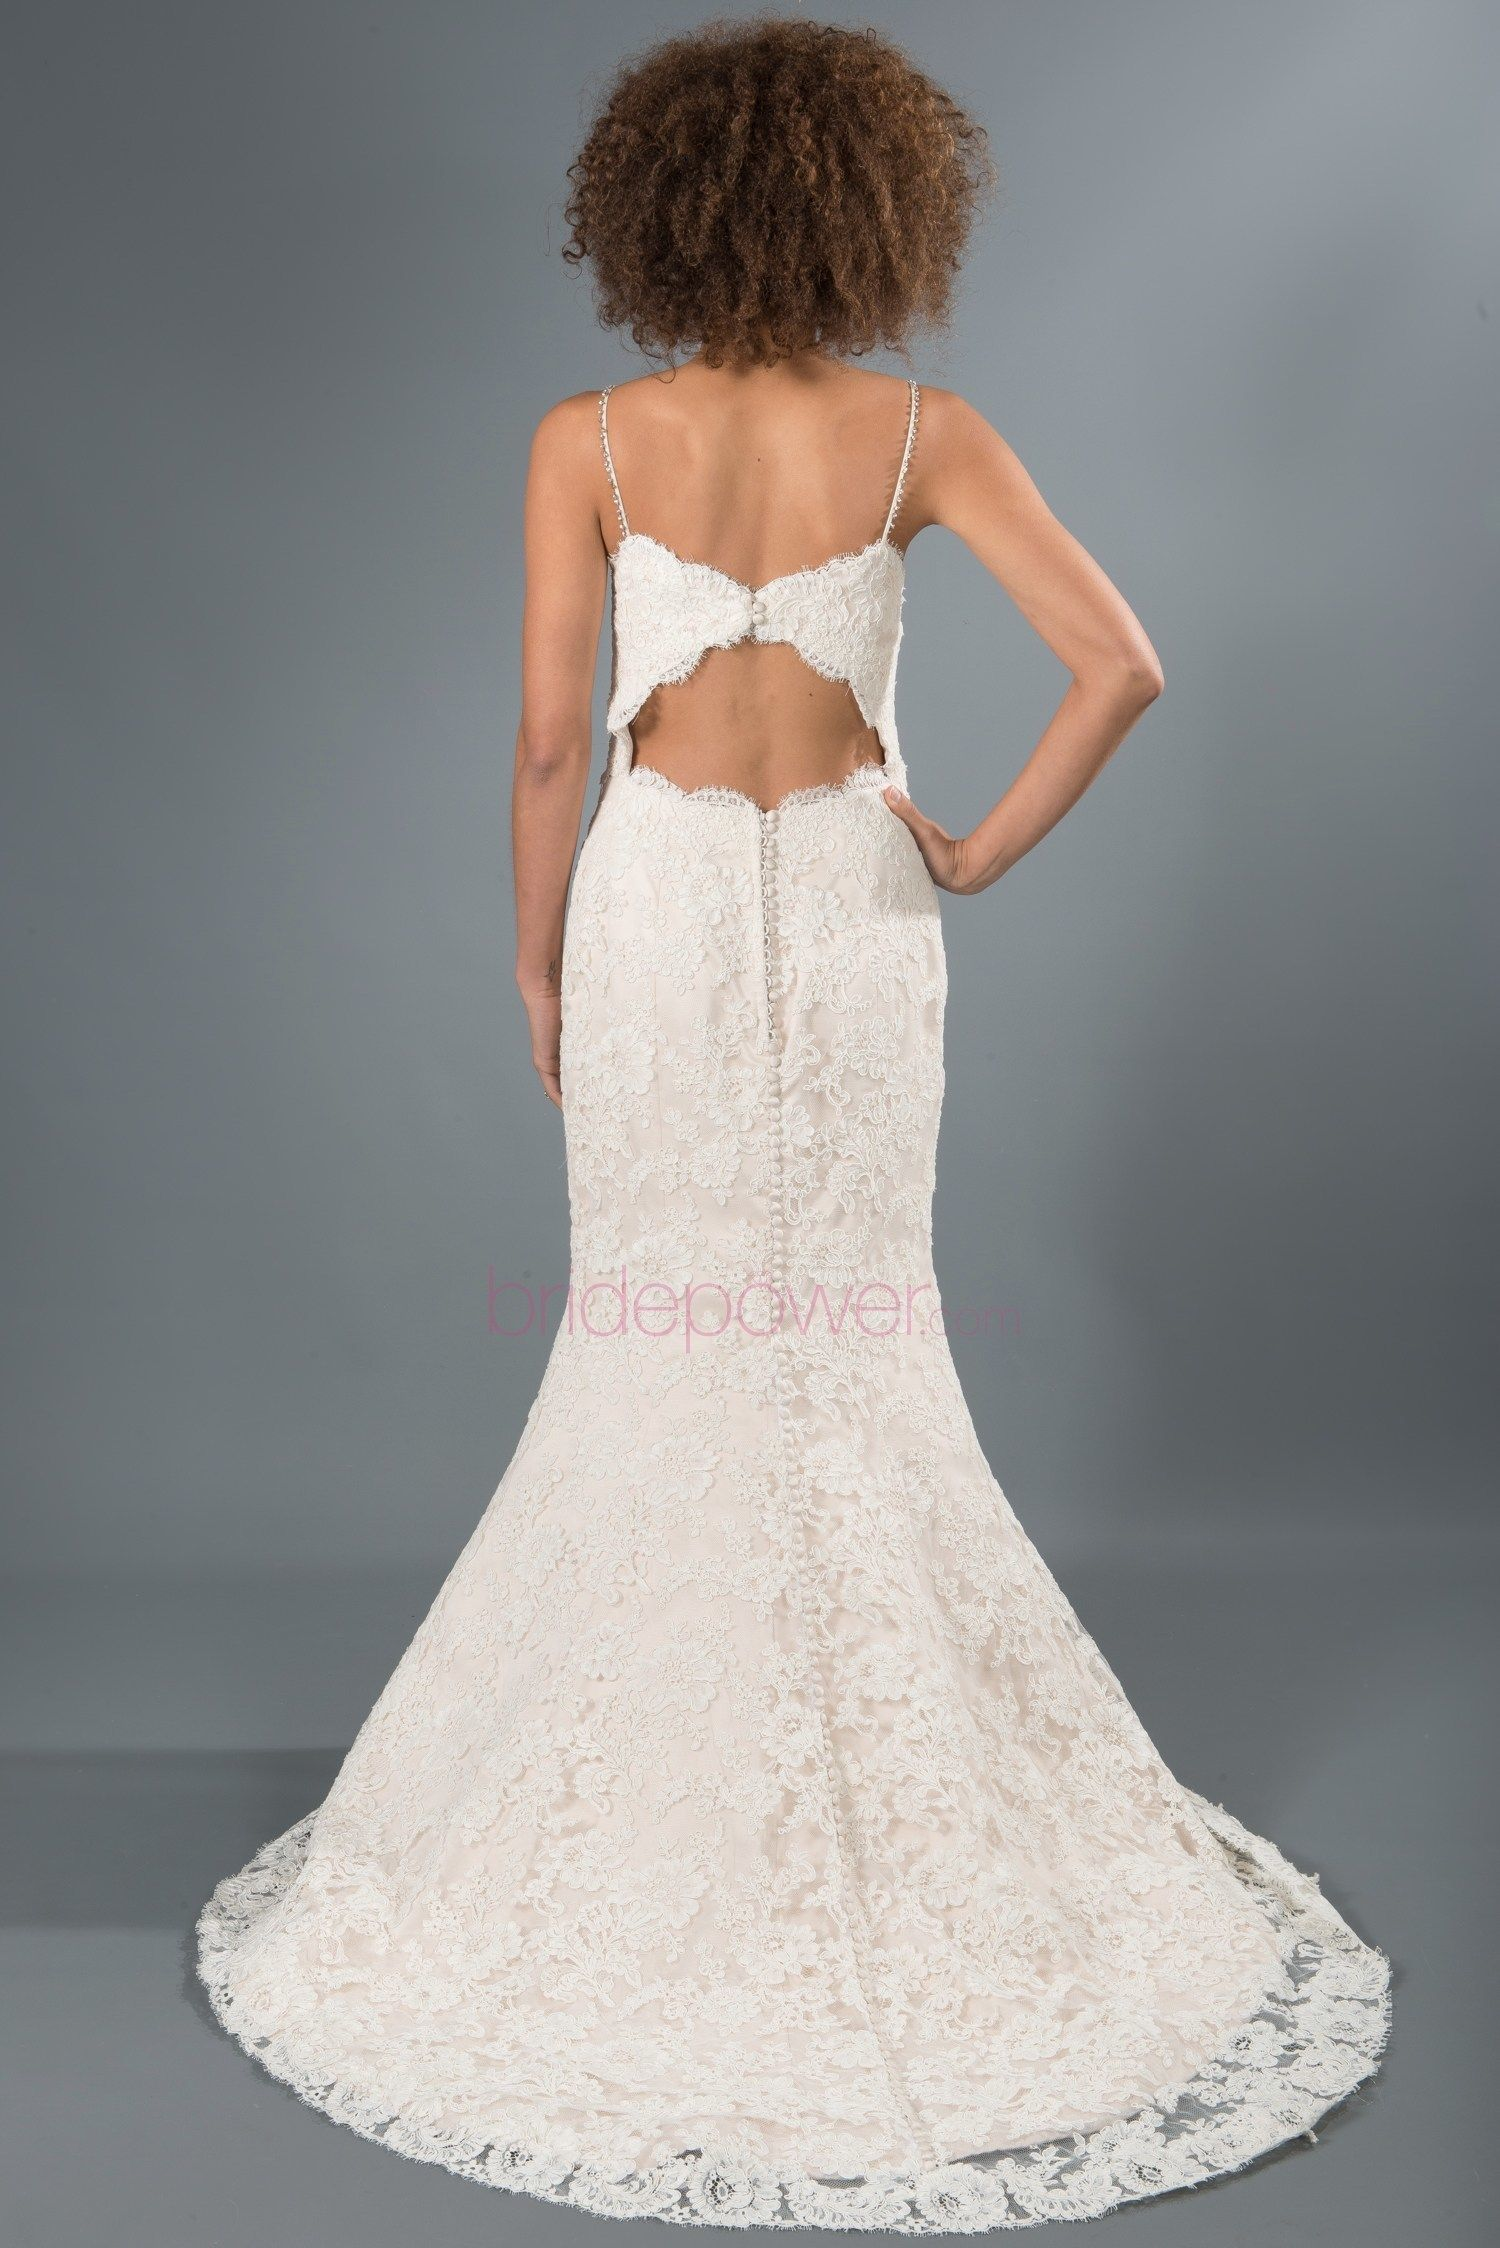 Wedding dress consignment shops near me  Elegant mermaid style gown with a beaded strap and keyhole back